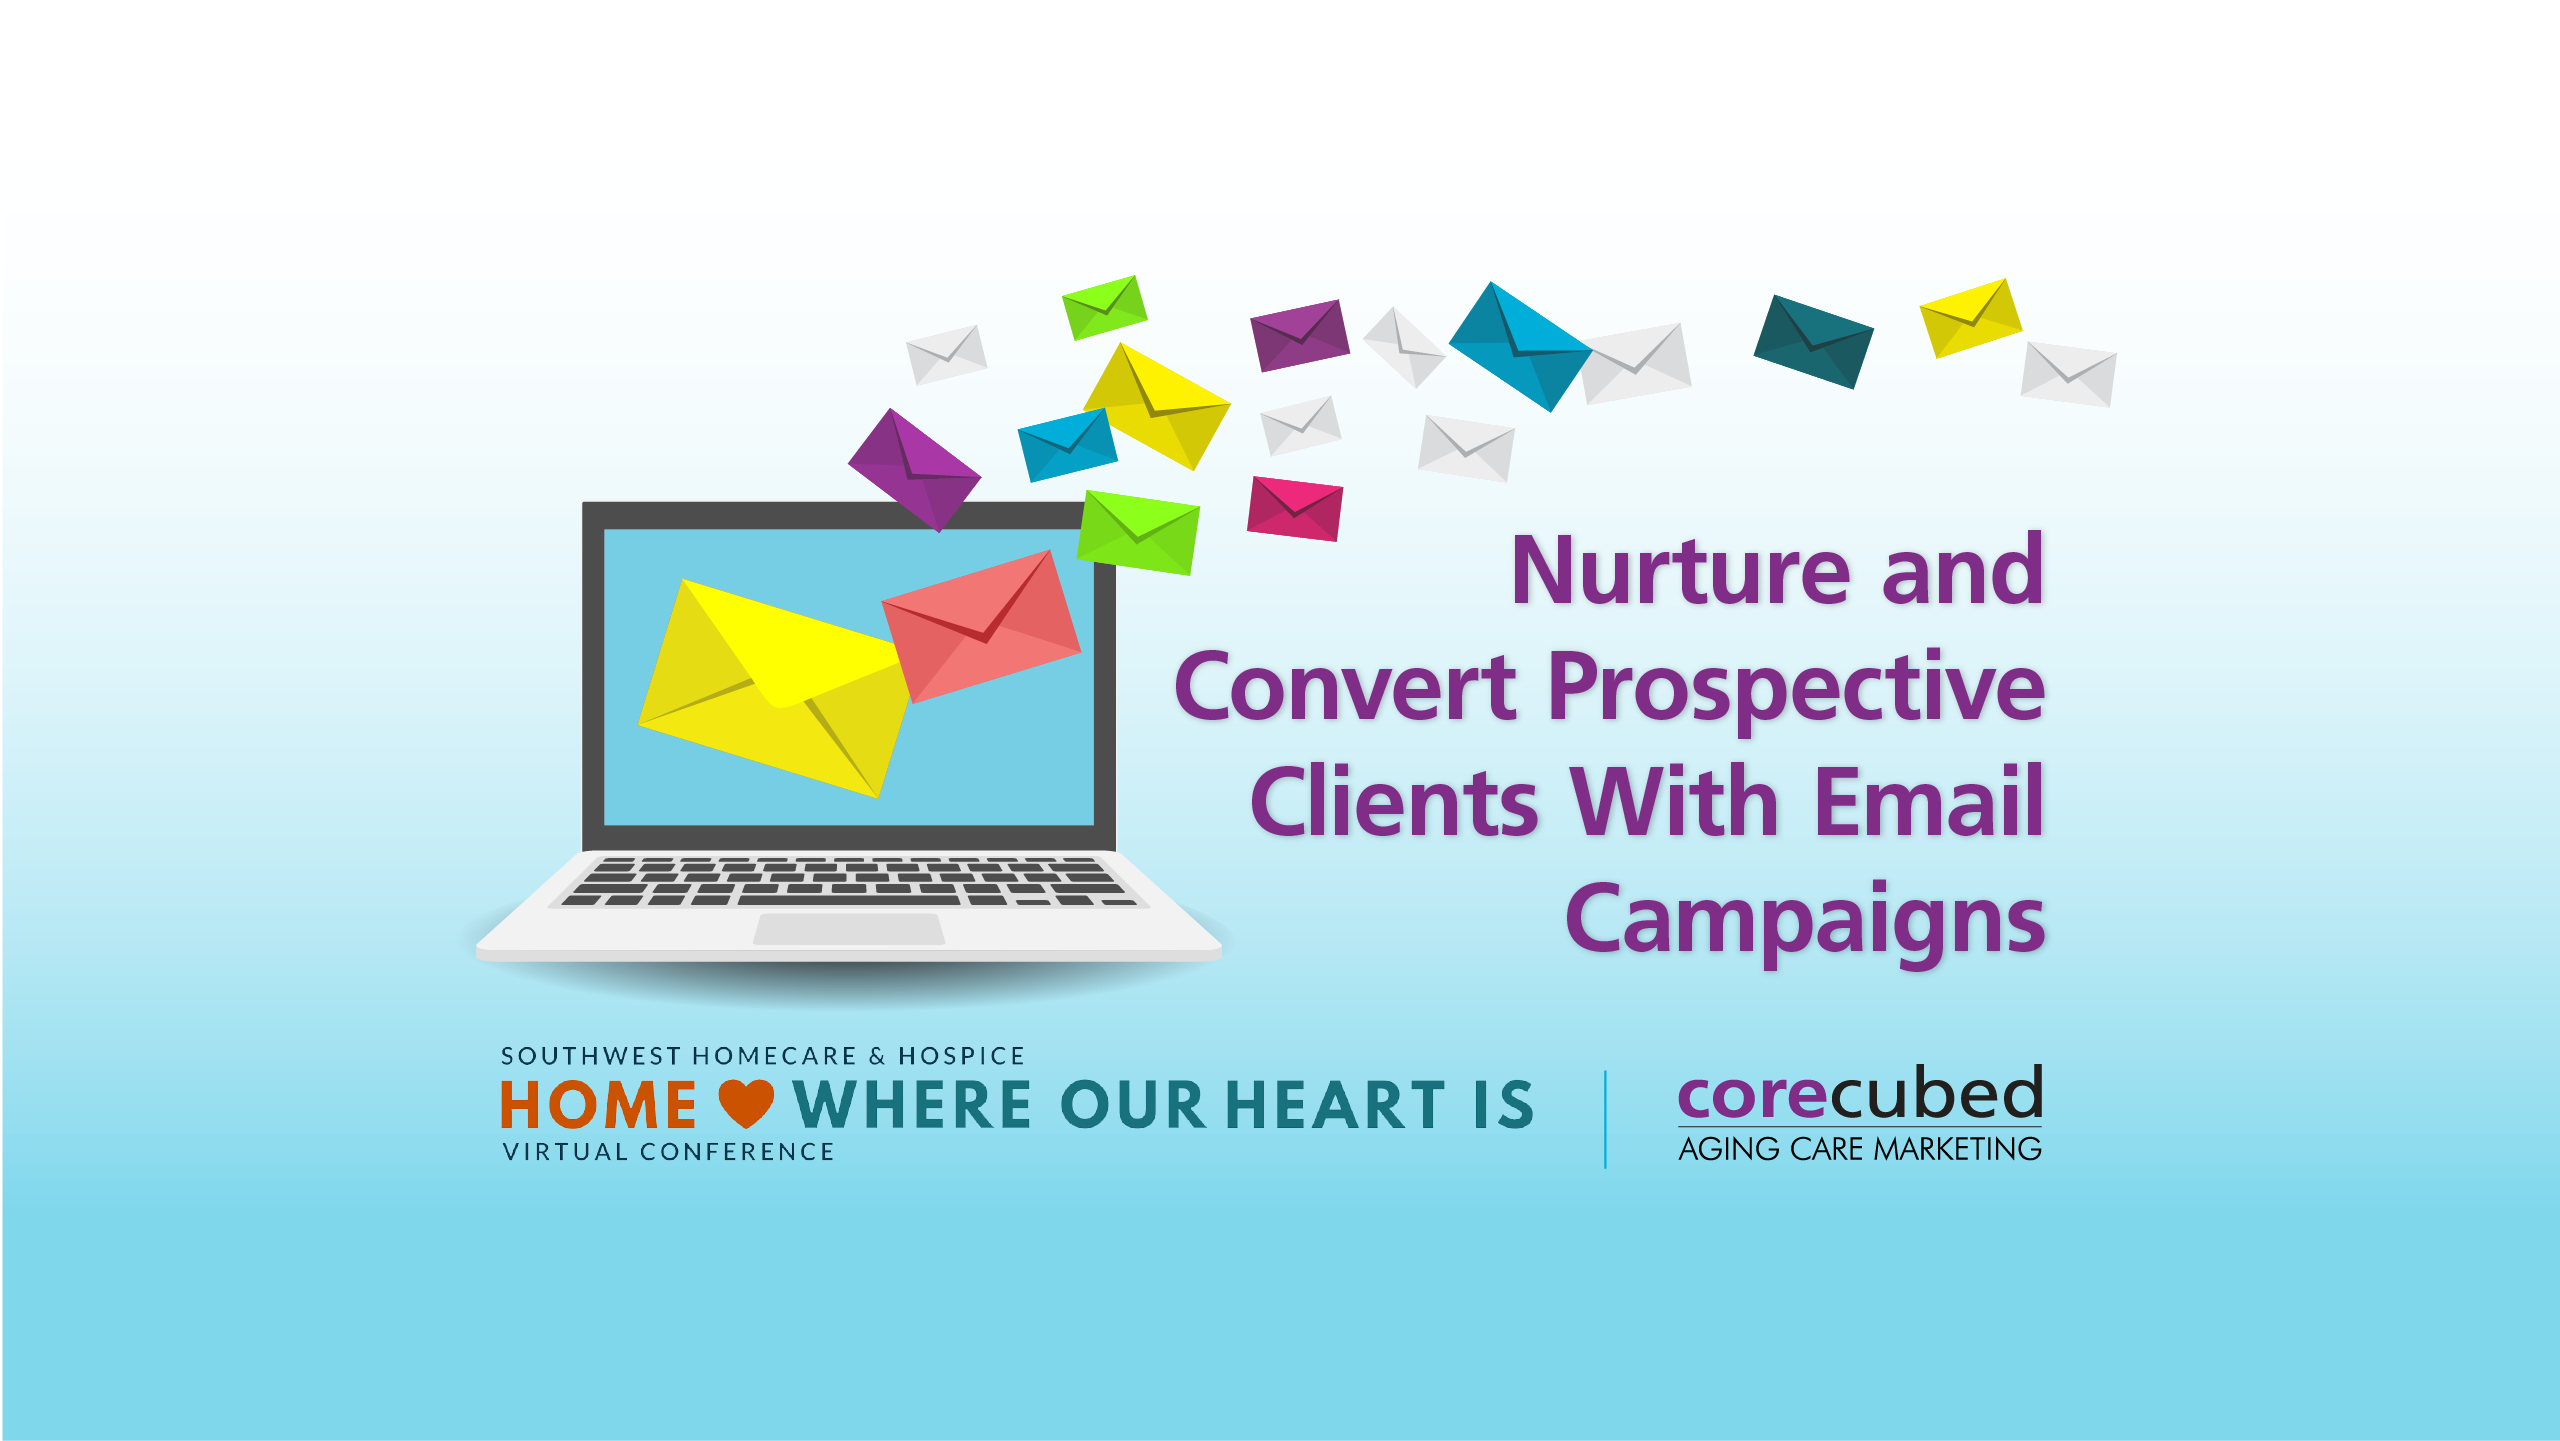 Nurture and Convert Prospective Clients With Email Campaigns